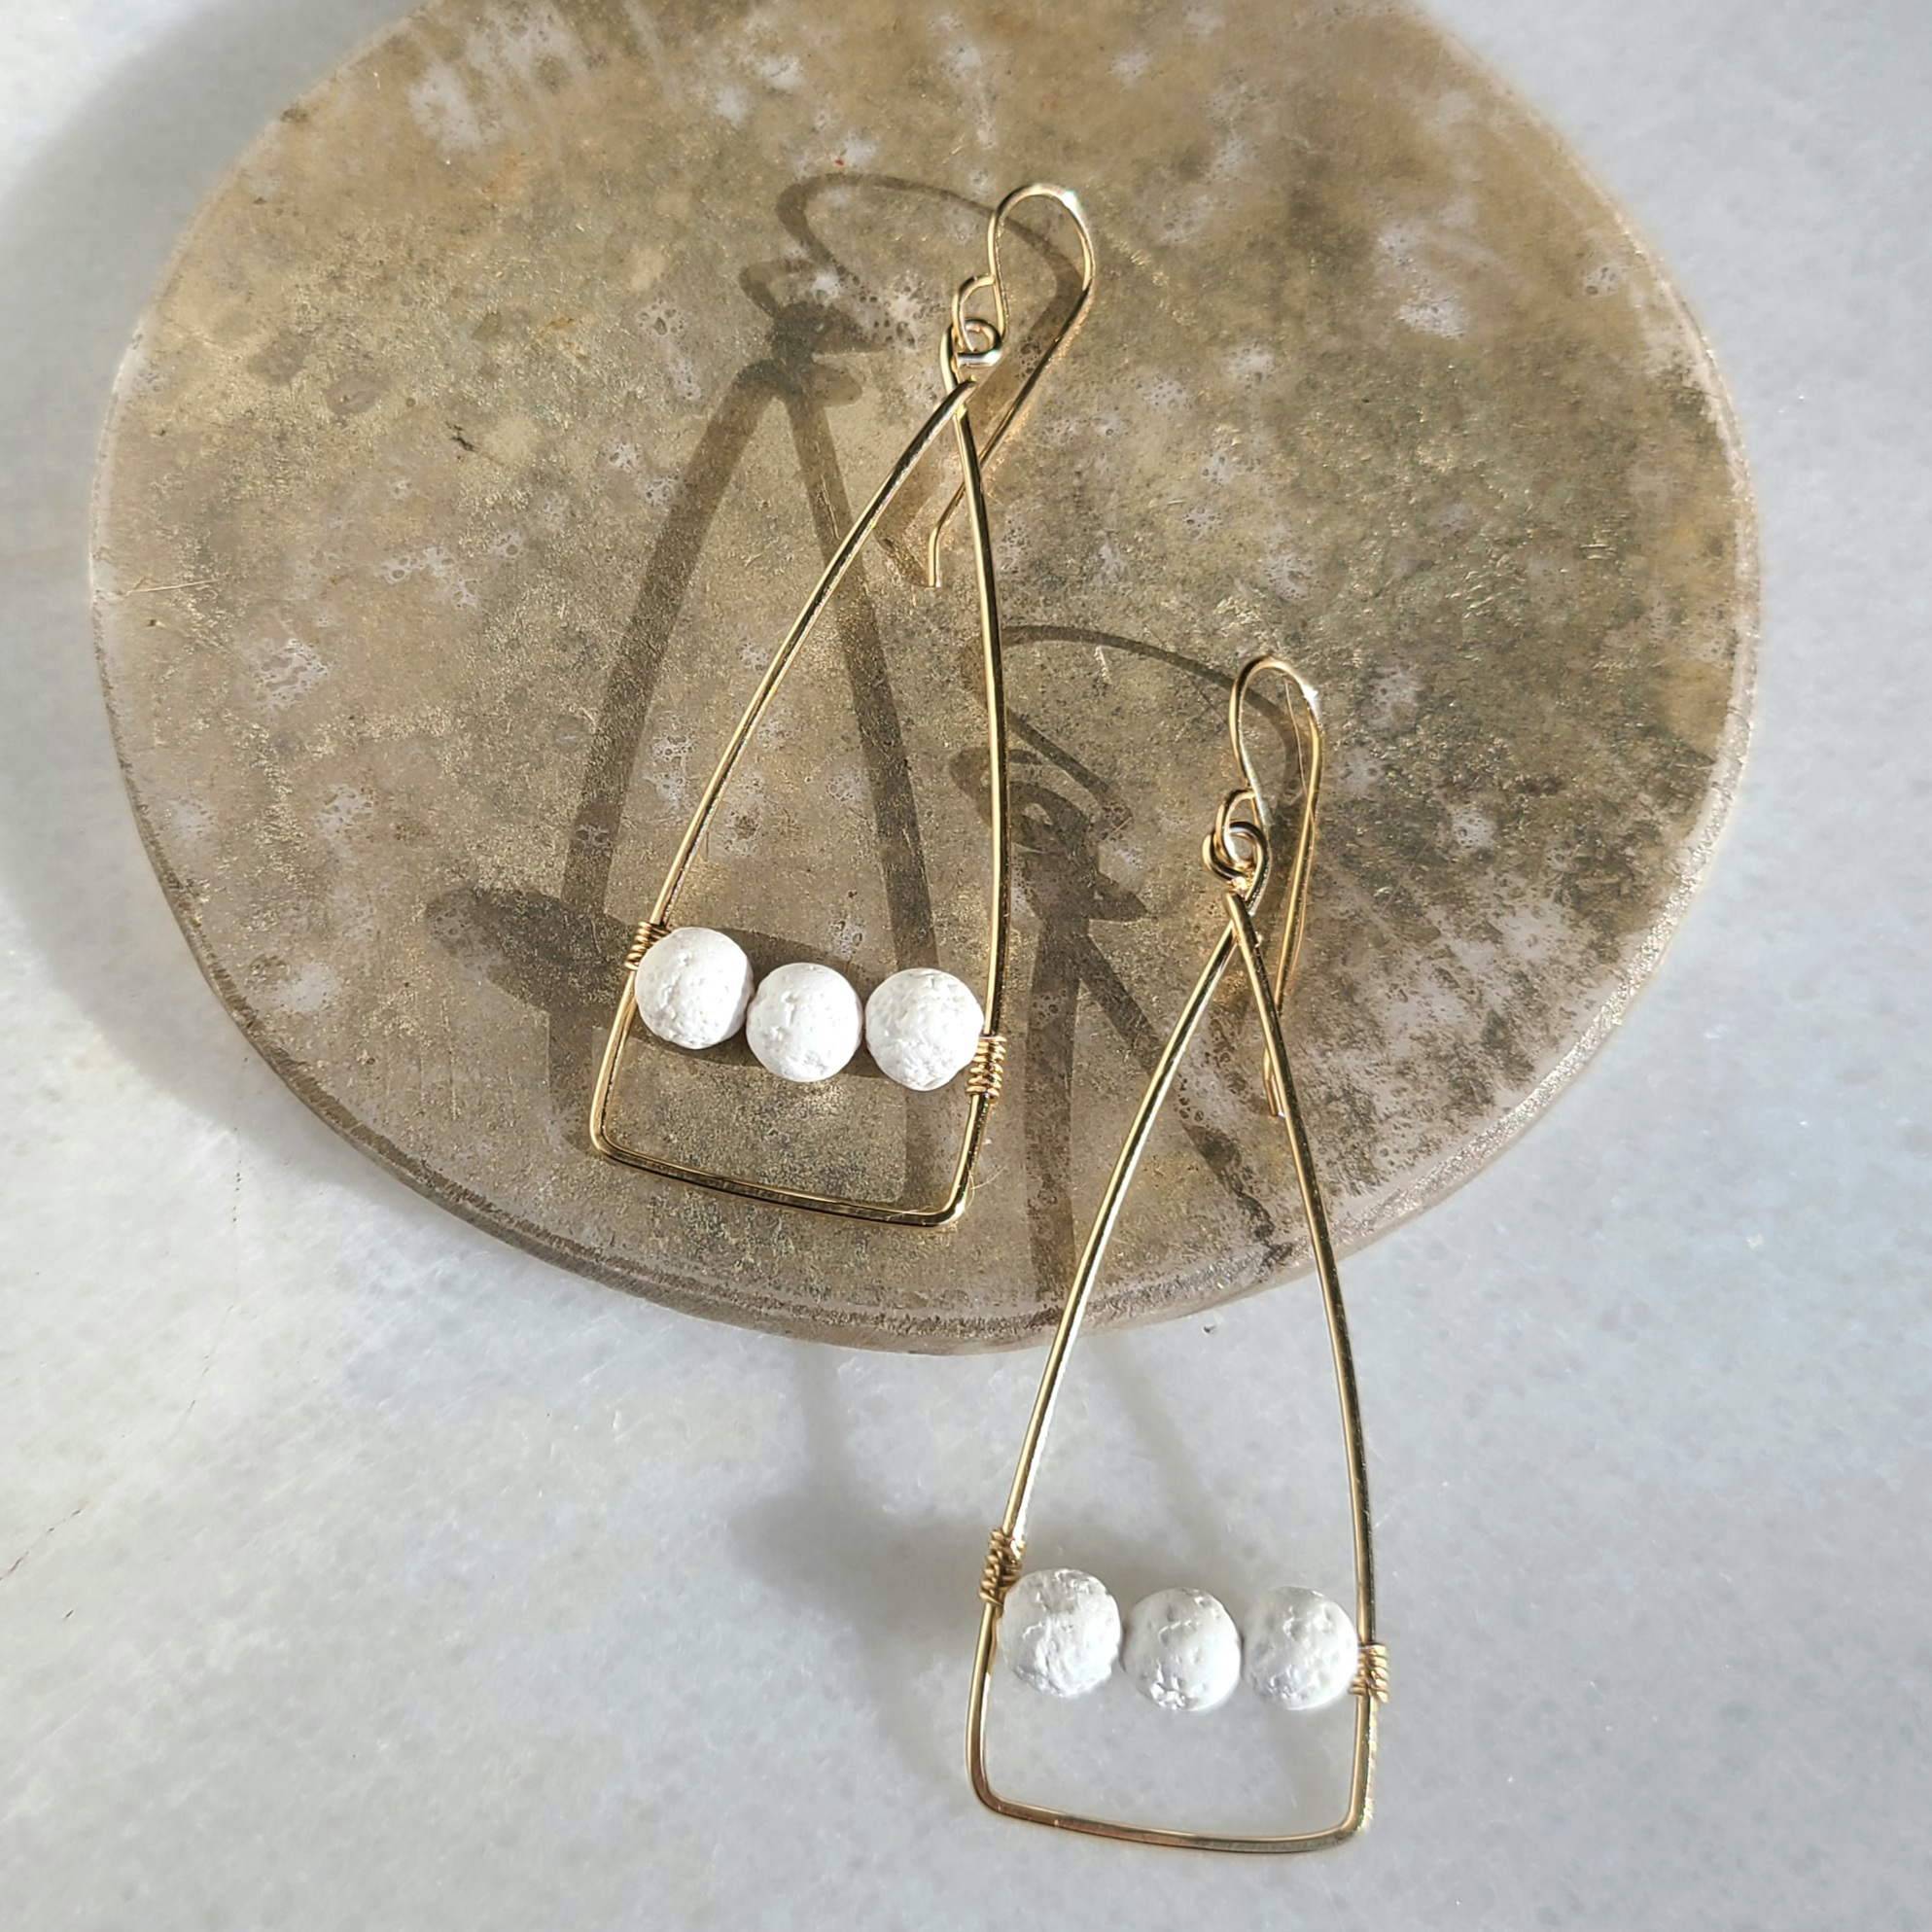 Anuket x James & Jezebelle Hedjet Earrings demi-fine gold triangle hoops with white lava rock stones for diffusing fragrance jewelry